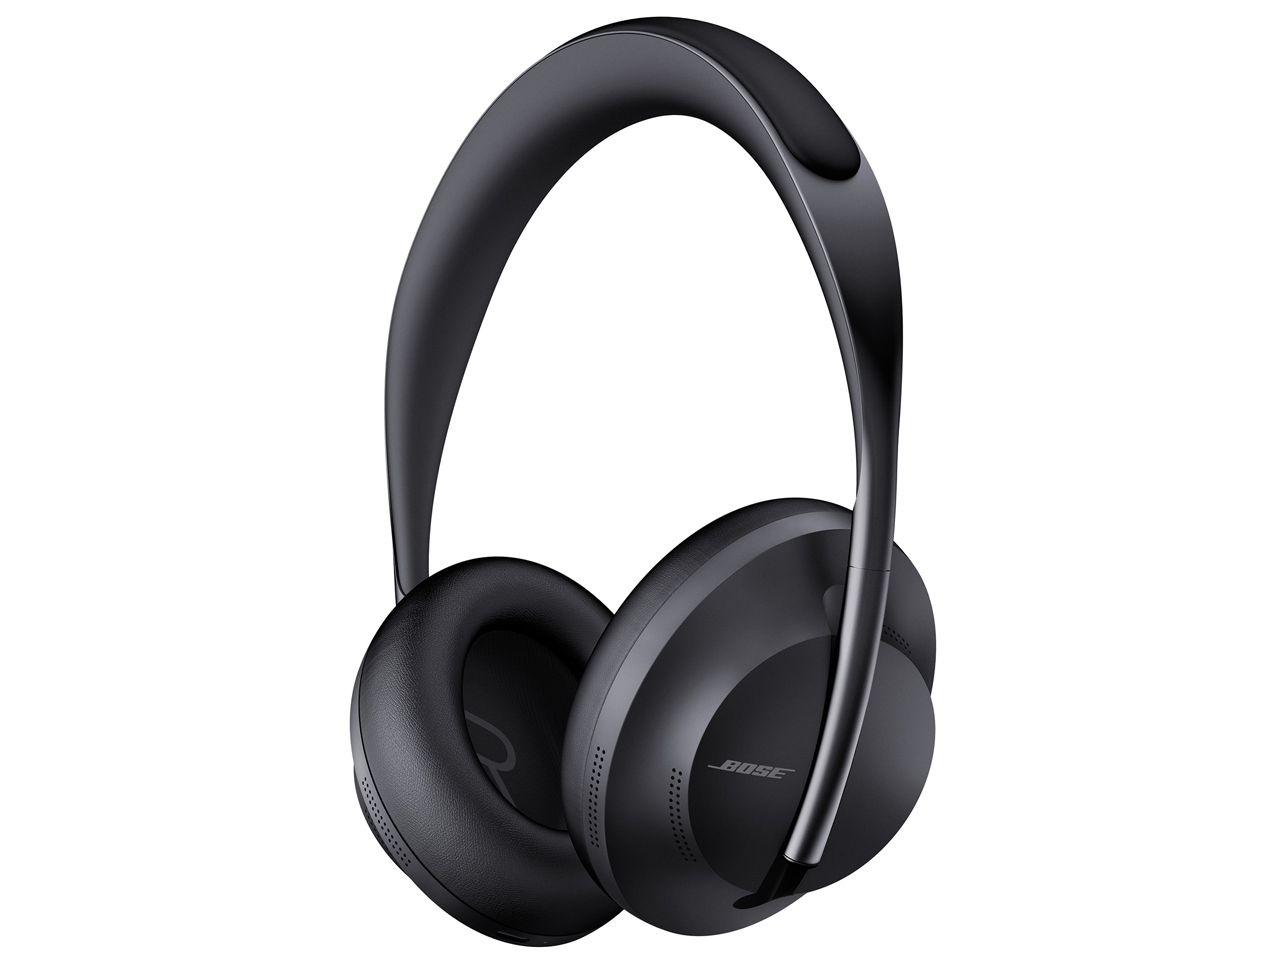 NOISE CANCELLING HEADPHONES 700のロゴ